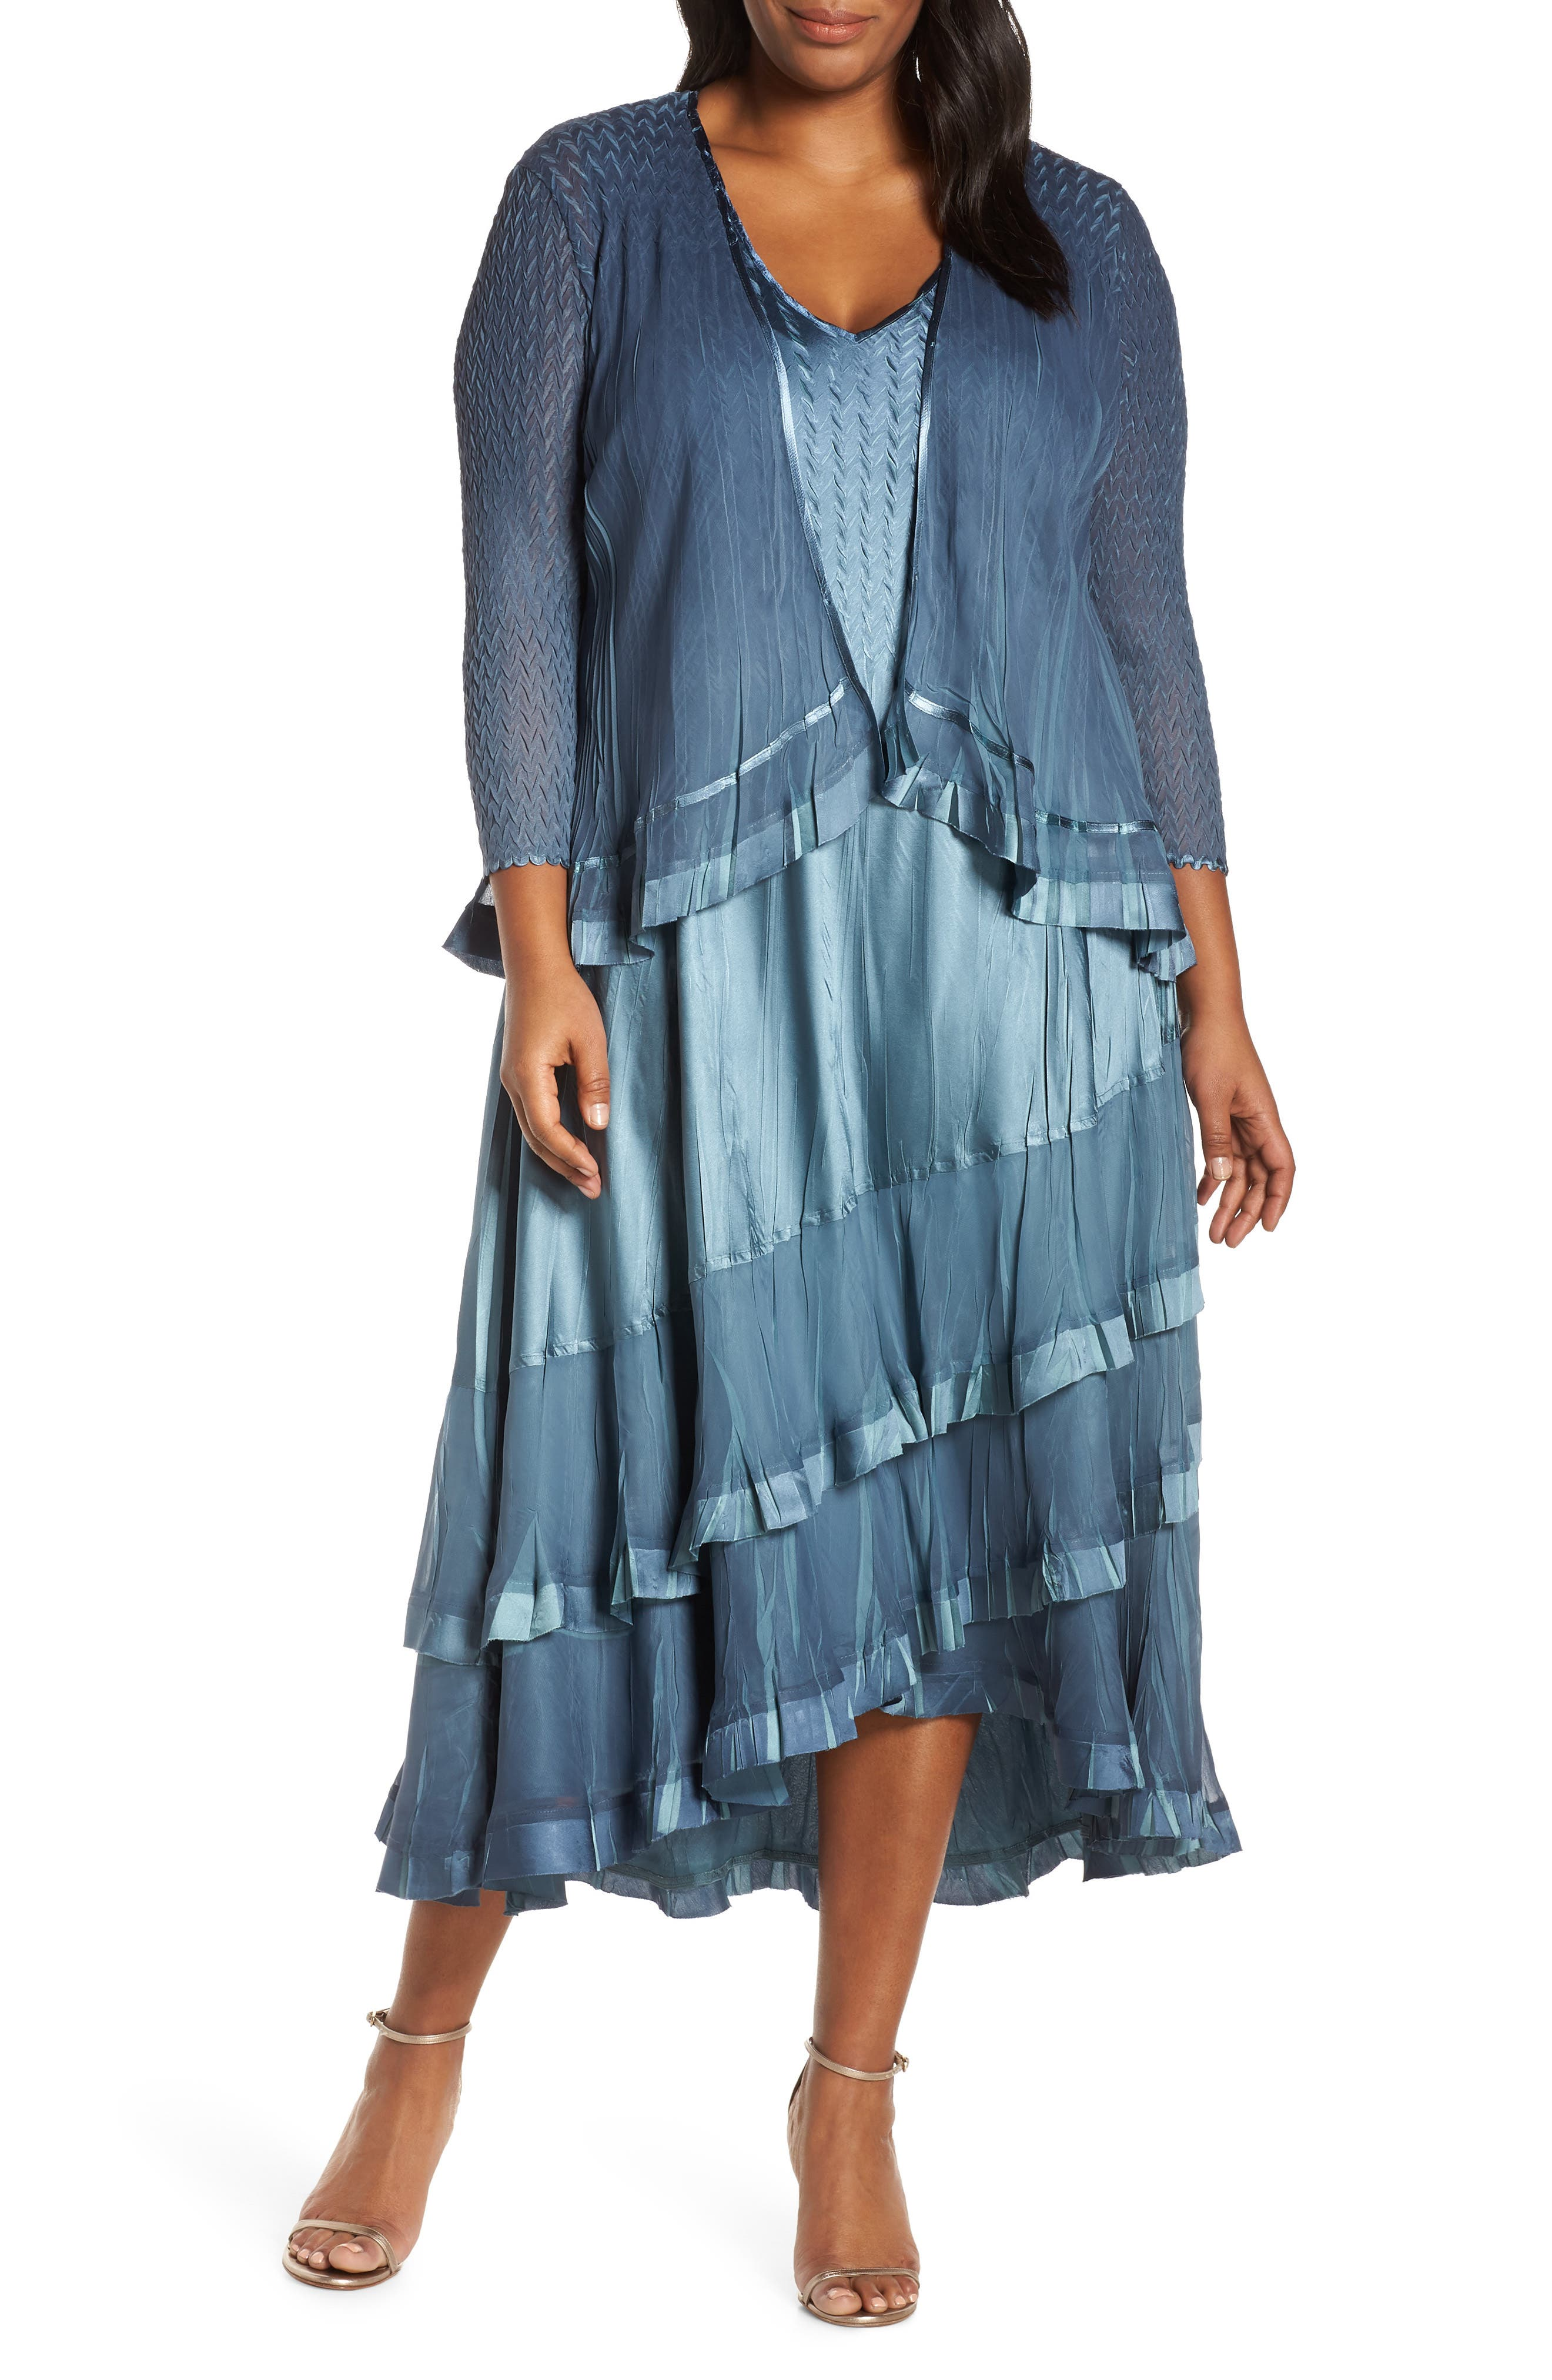 KOMAROV, Charmeuse Cocktail Dress with Jacket, Main thumbnail 1, color, SILVER BLUE OMBRE